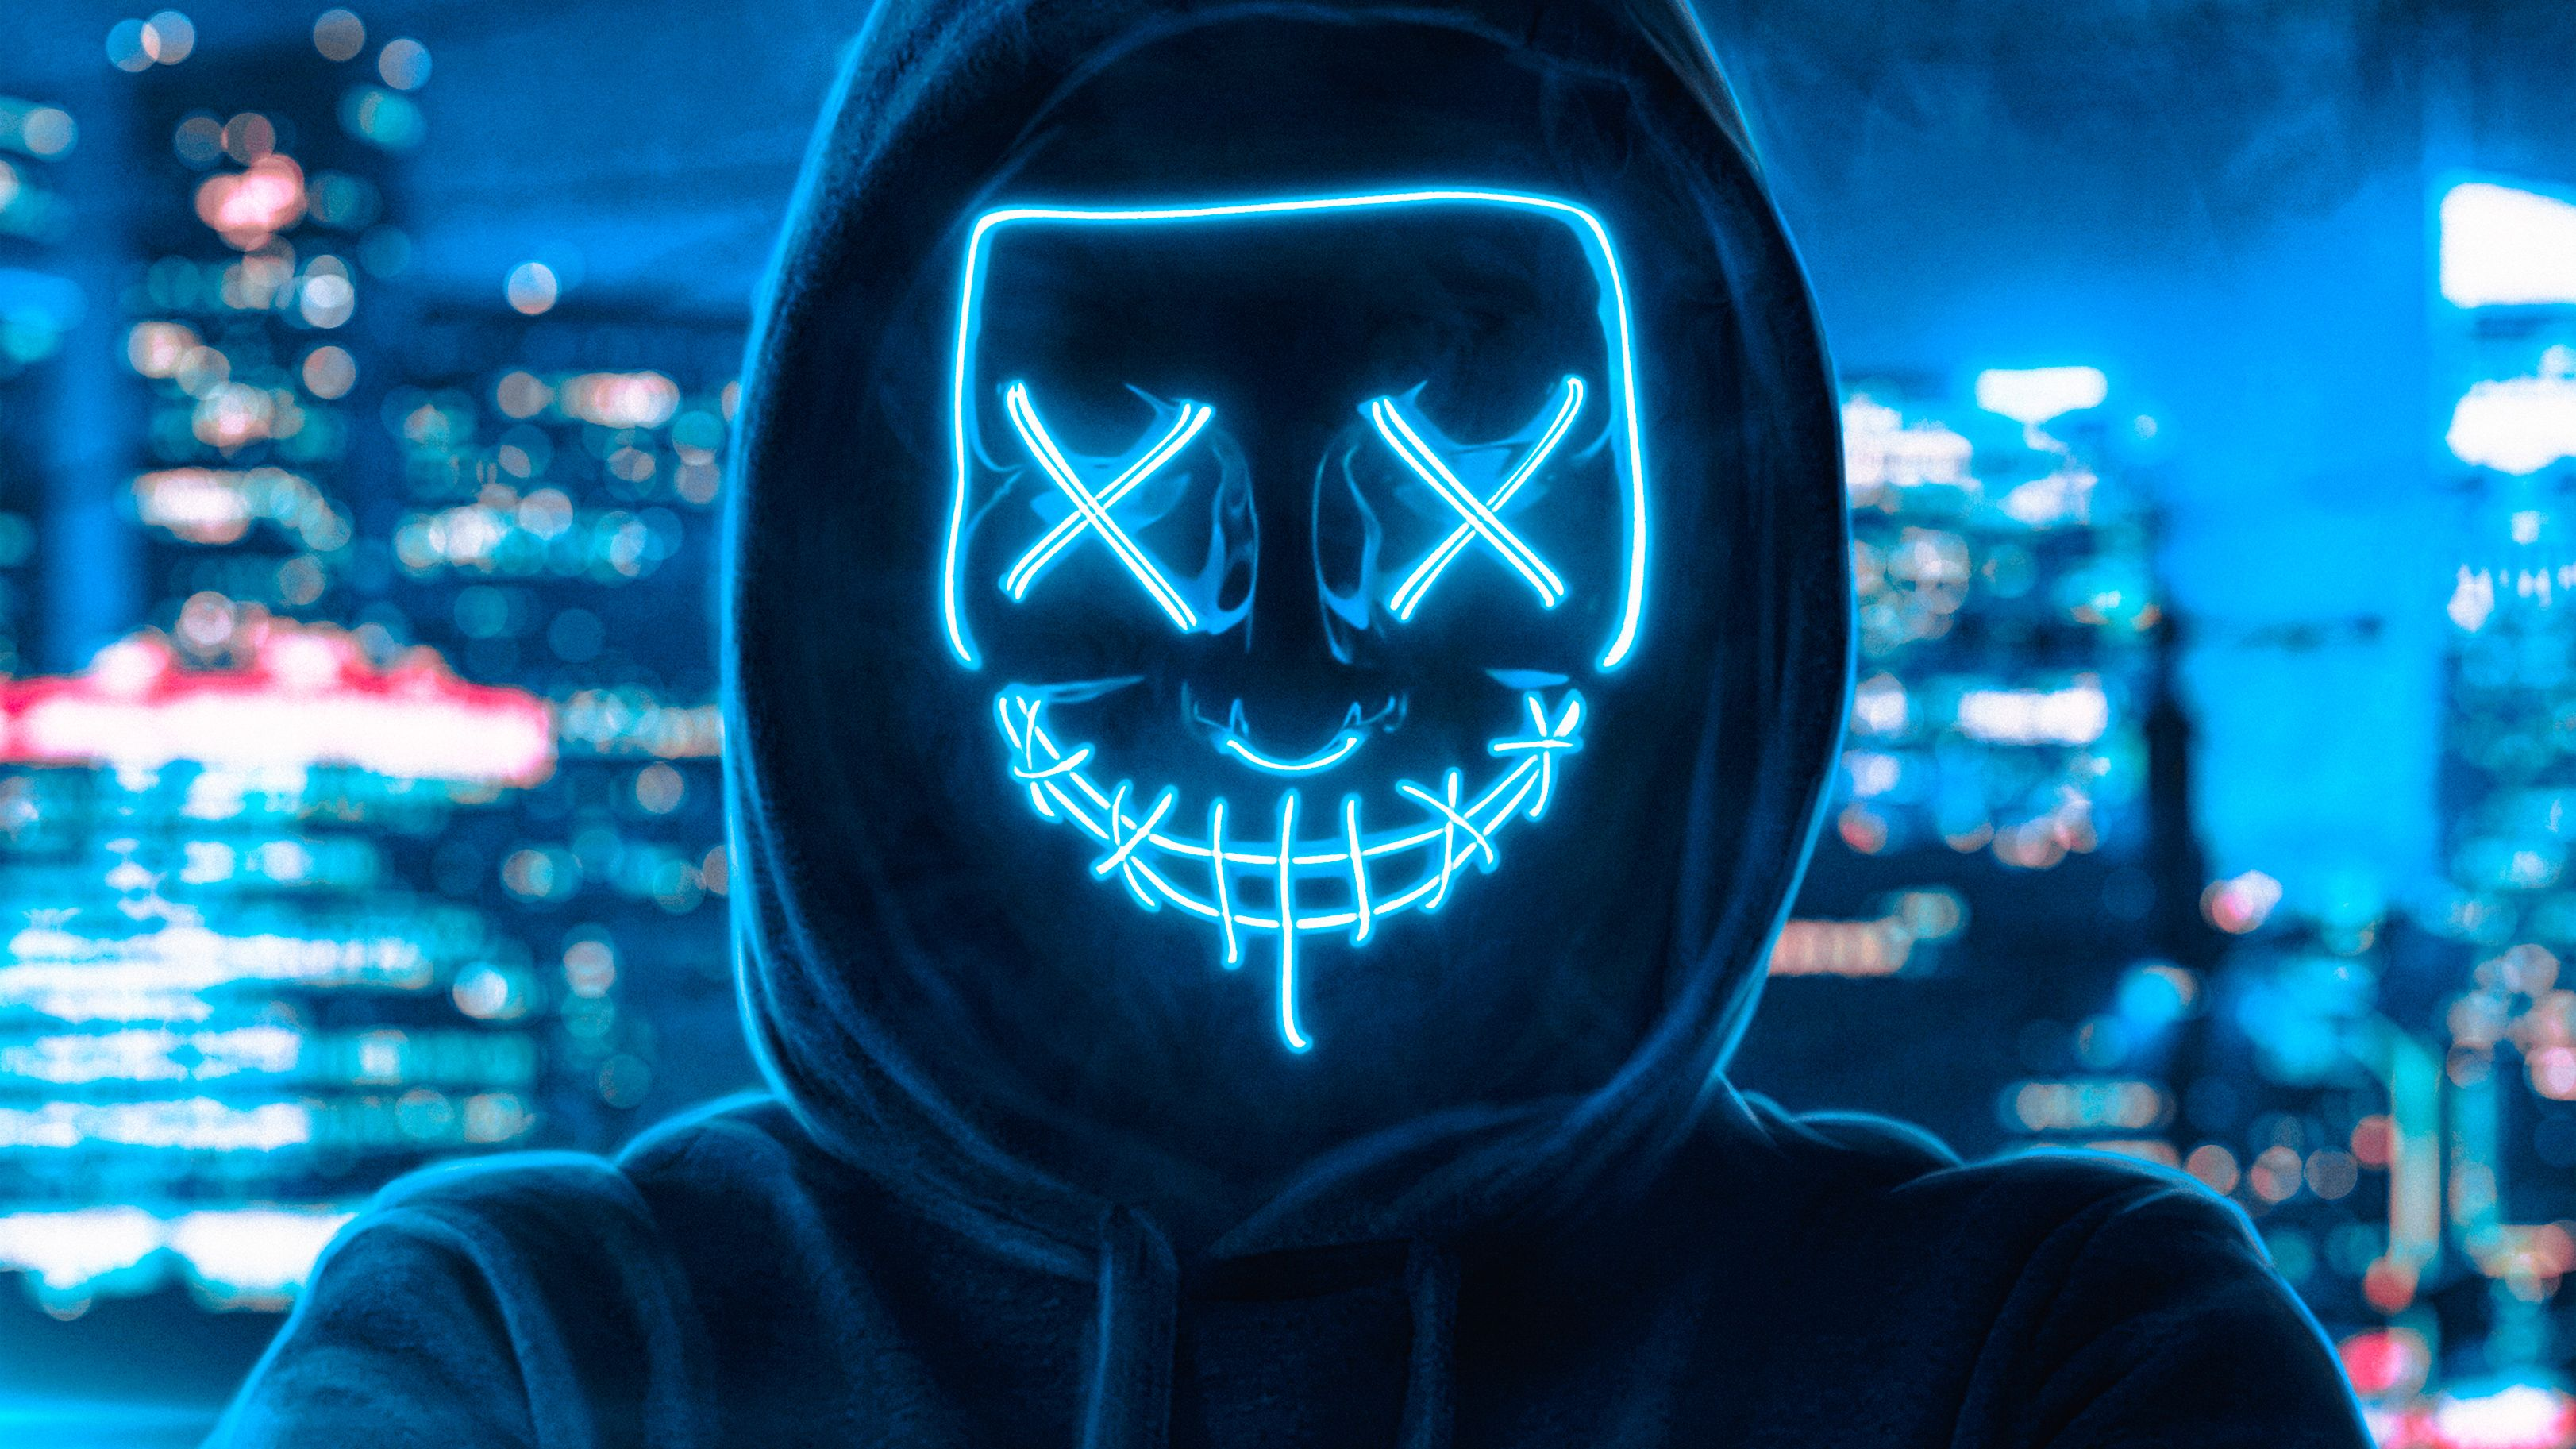 Guy In Mask Wallpapers Wallpaper Cave